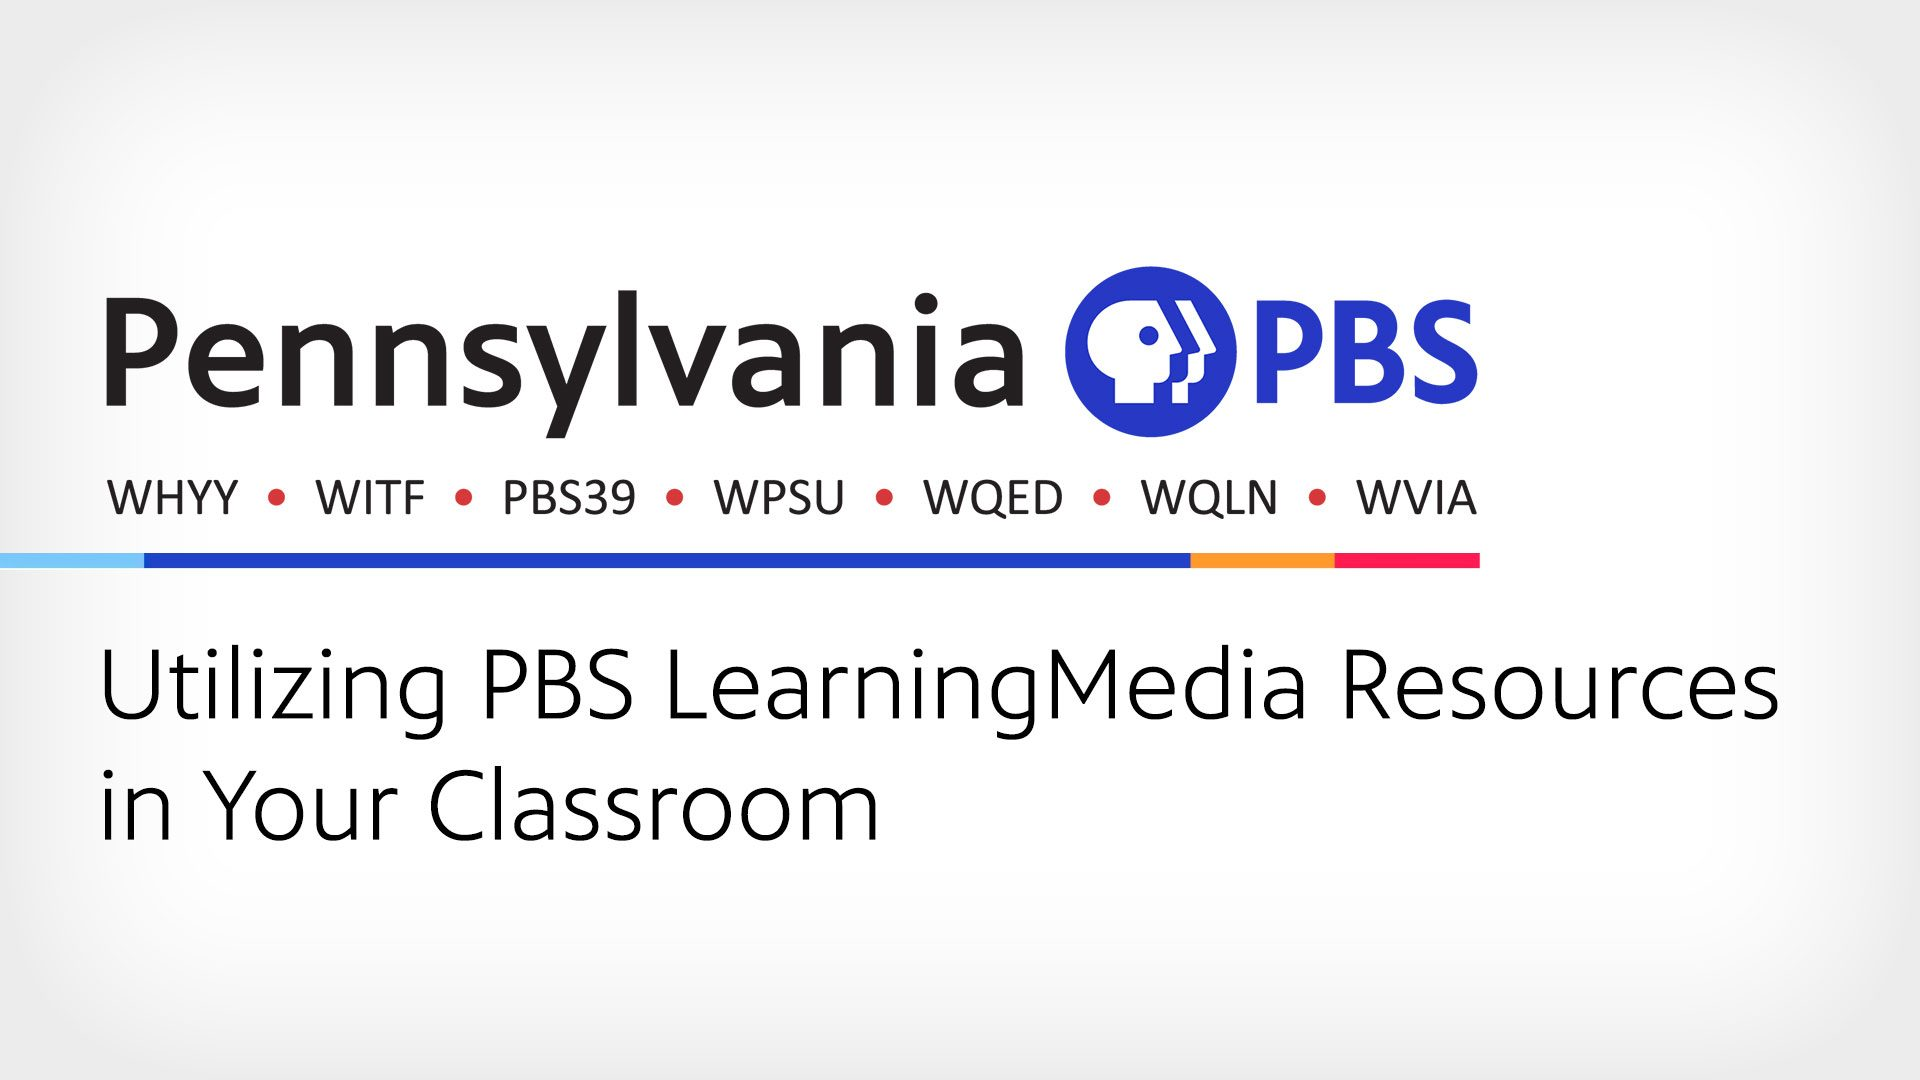 Utilizing PBS LearningMedia Resources in Your Classroom